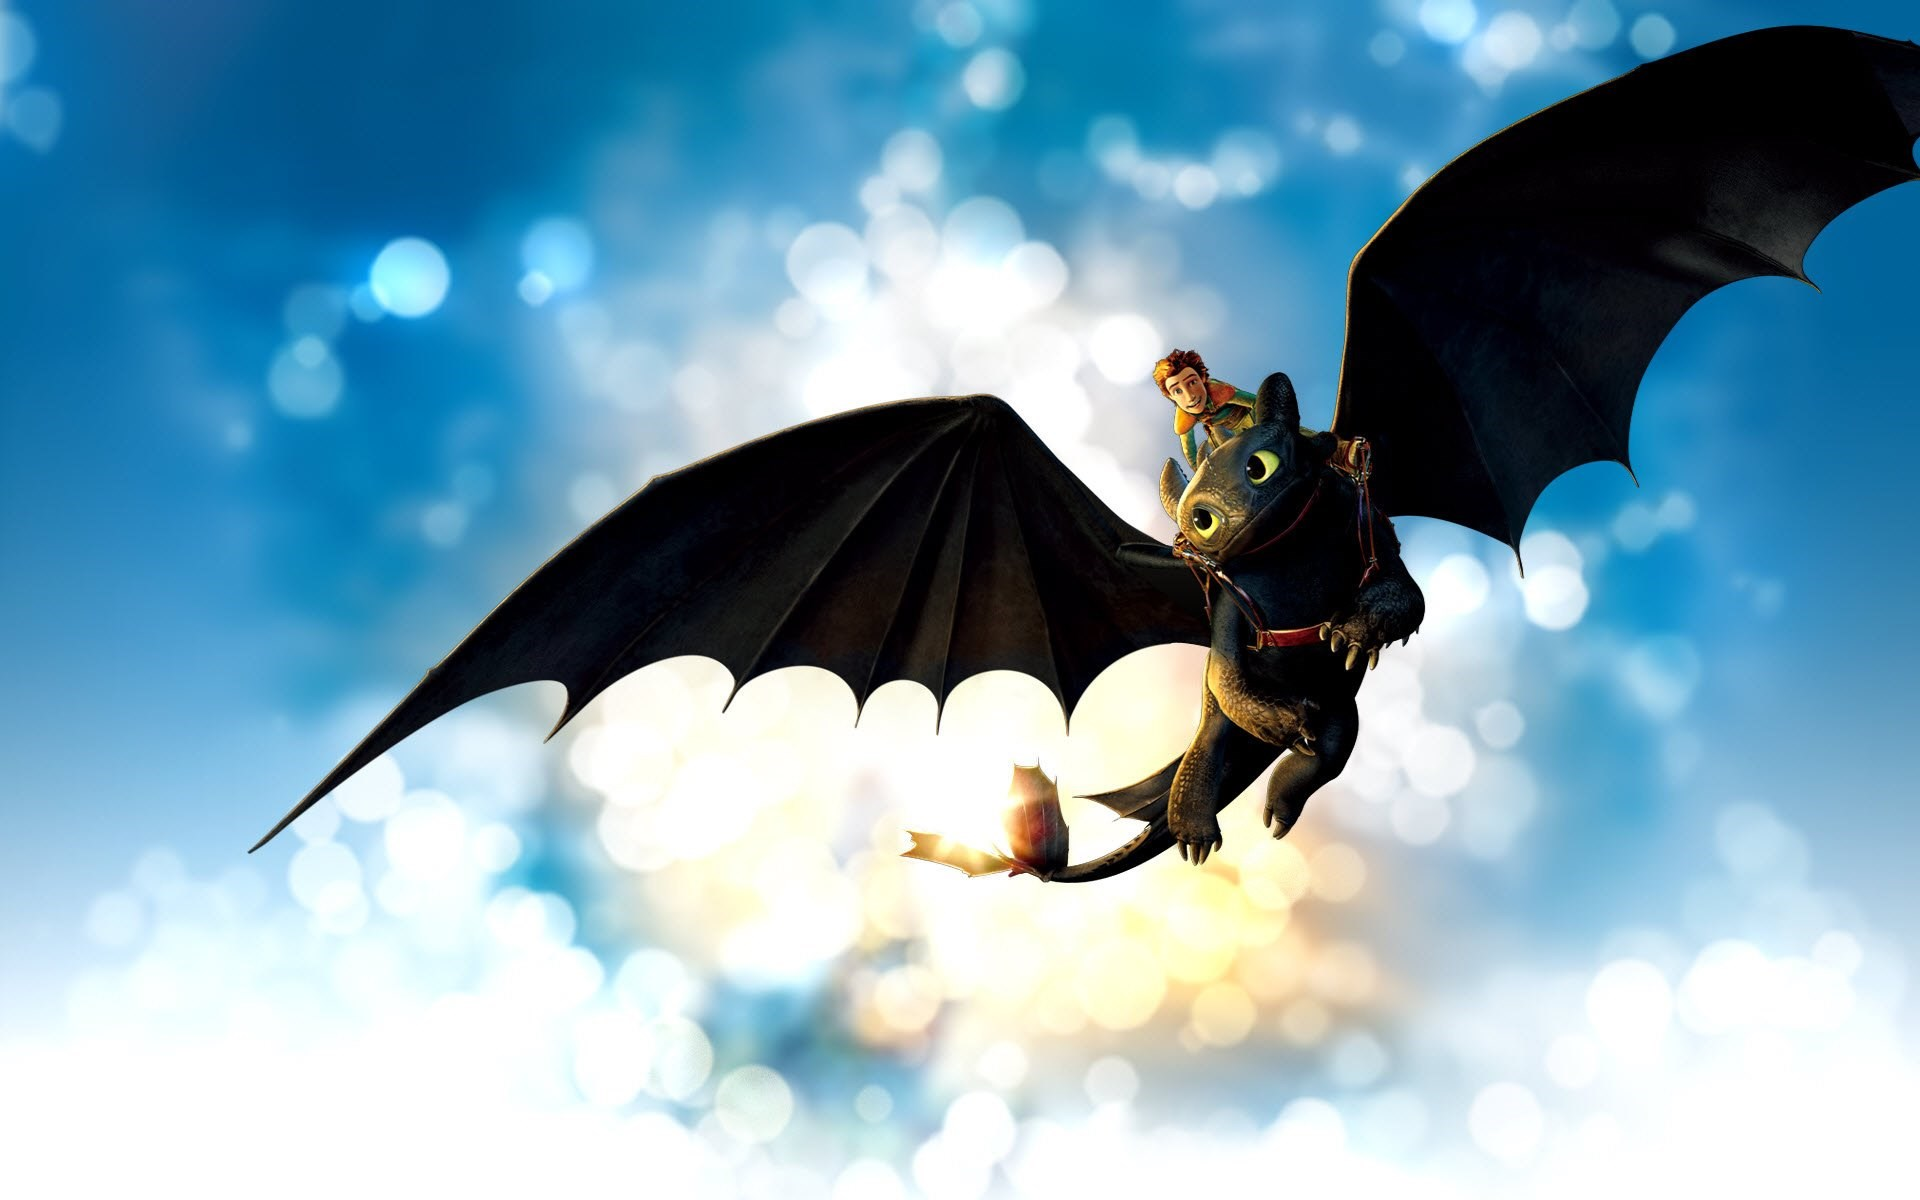 How To Train Your Dragon Free Wallpapers 45 Photos For Your